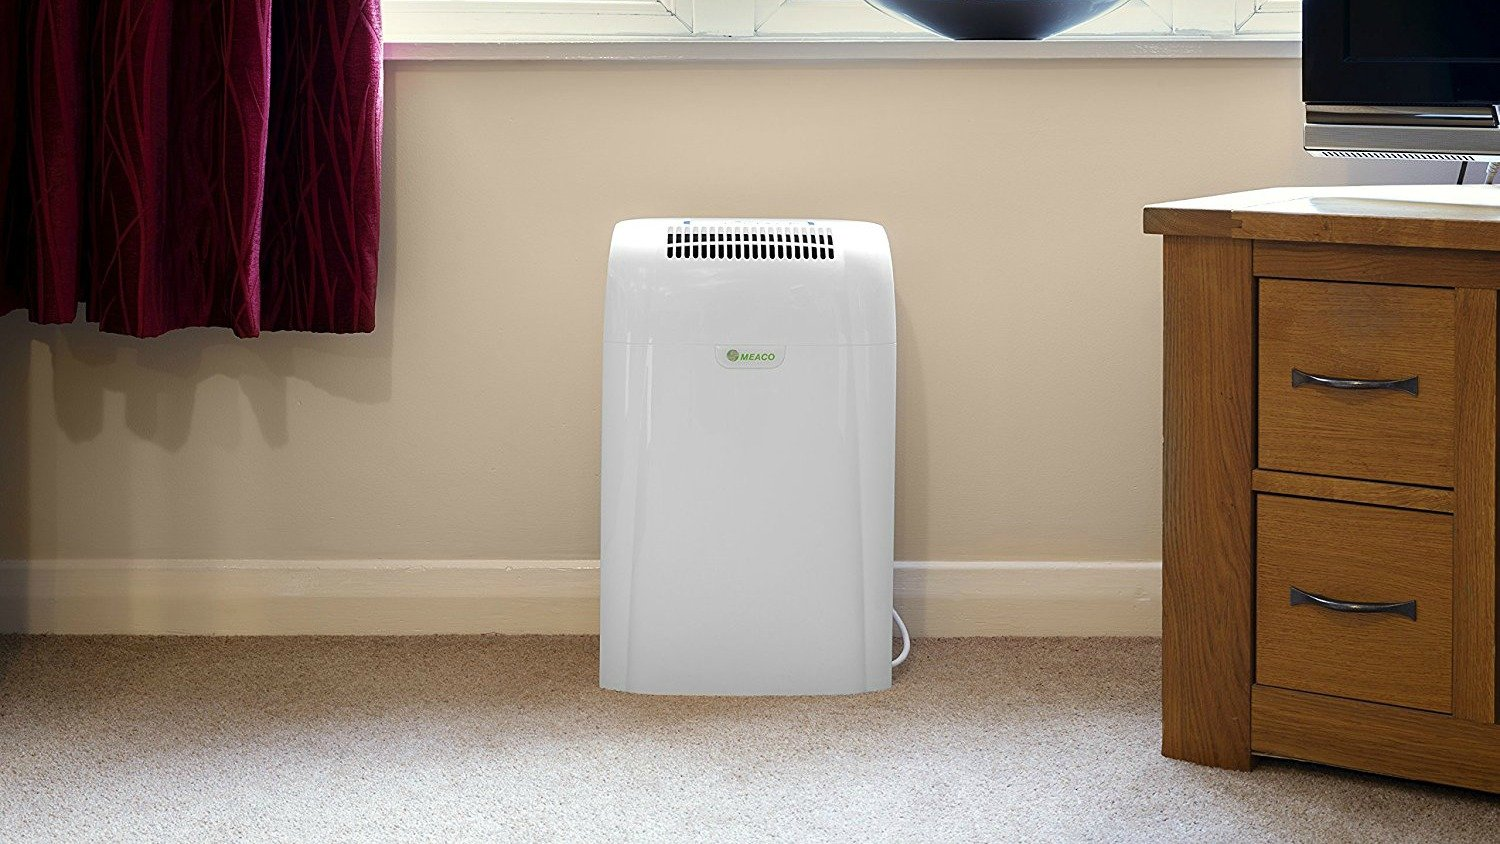 Best Dehumidifiers The Top Dehumidifiers To Buy For The